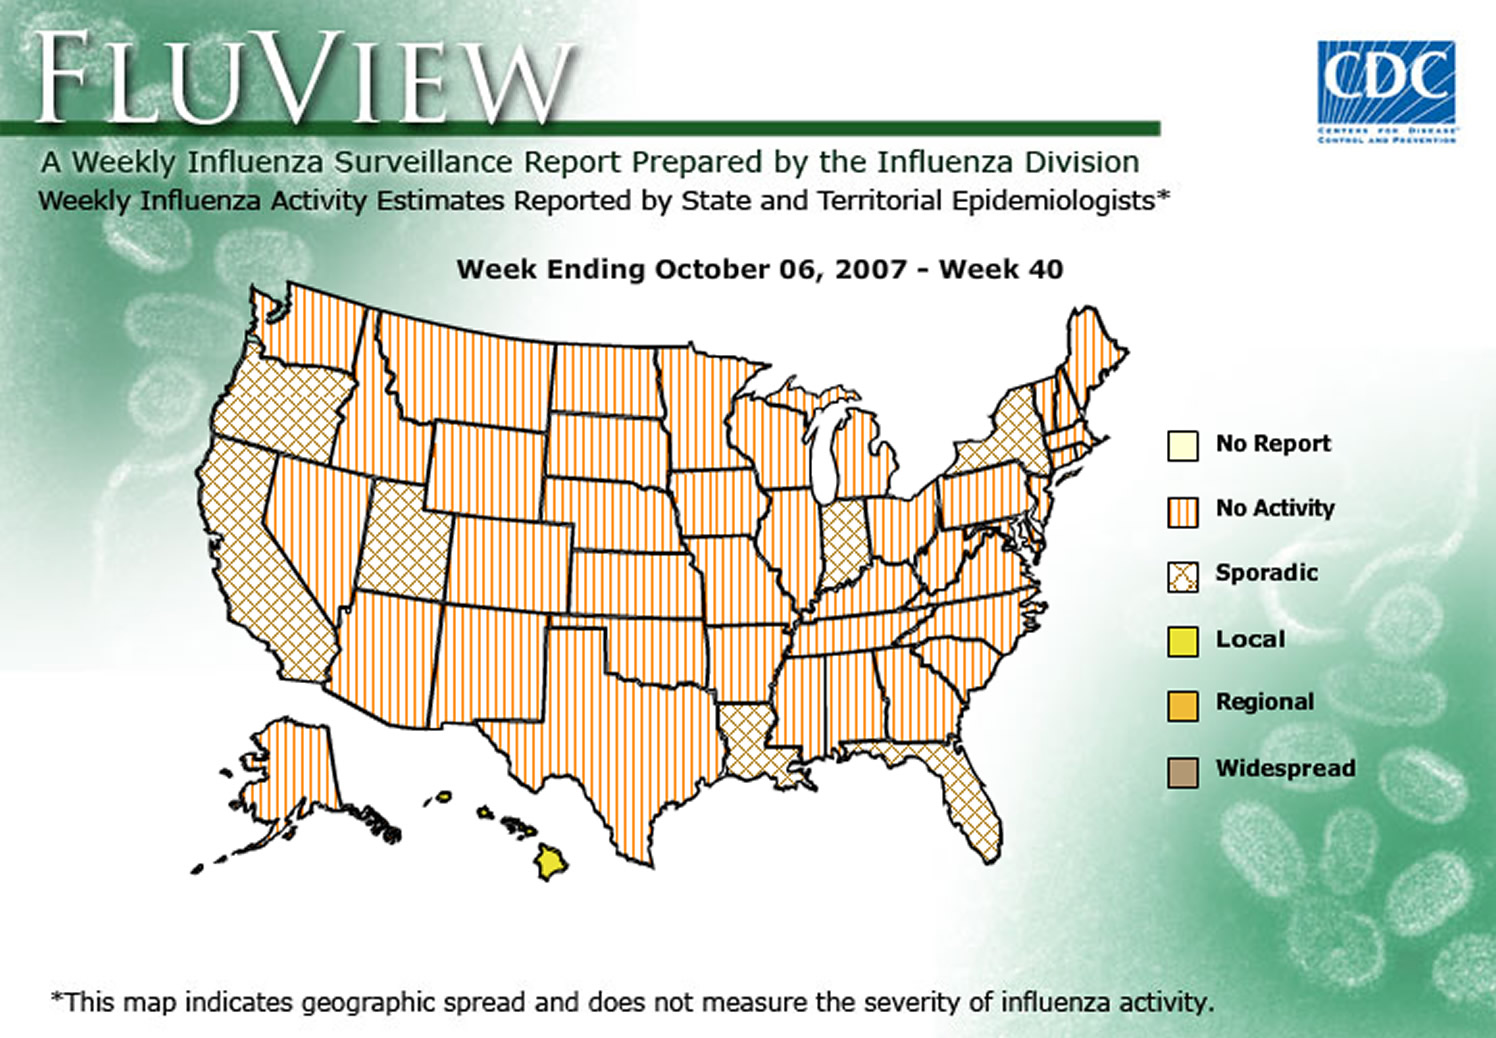 CDC Influenza Historical Weekly Maps on